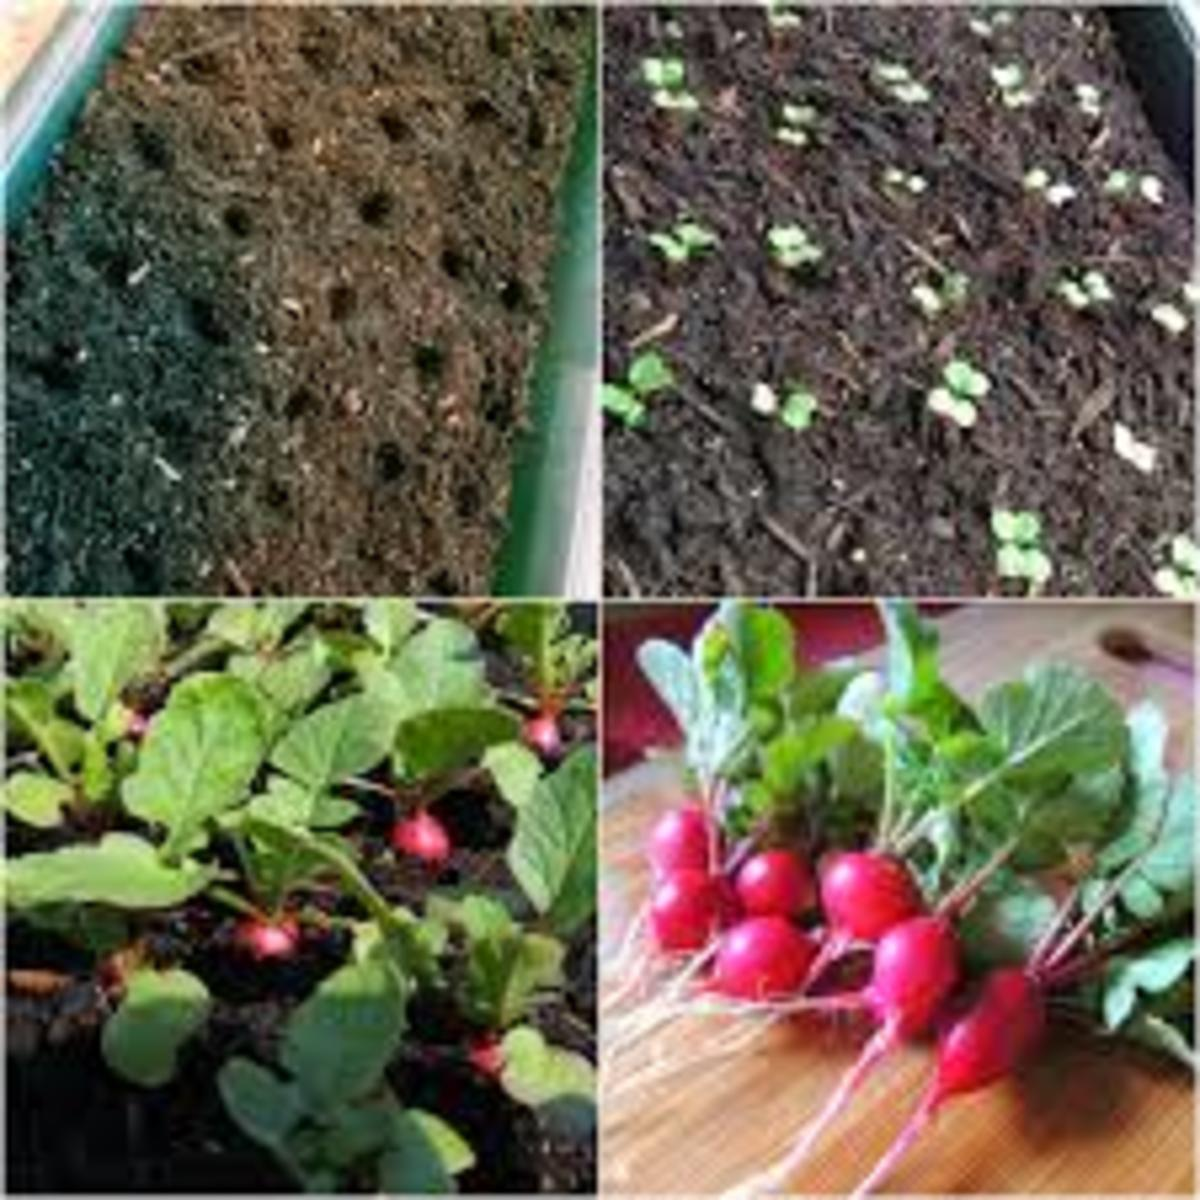 You can easily grow great crops of radishes in containers. This would be a great project for kids to do as the radishes will grow quickly and then they can pick the radishes, wash them and eat them.